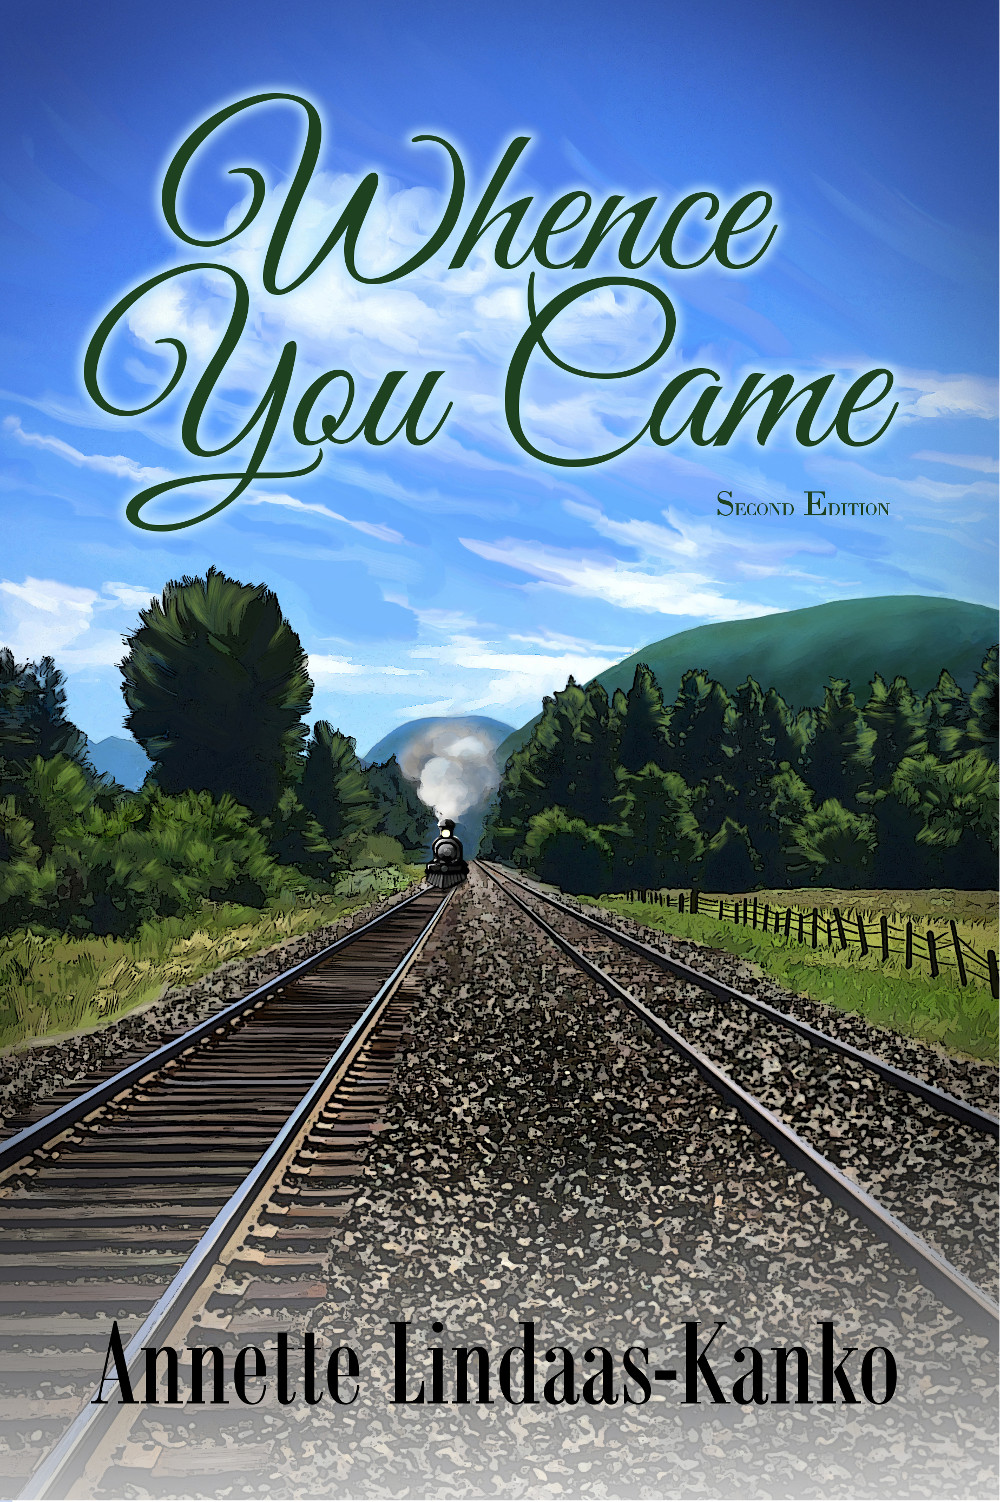 WHENCE YOU CAME